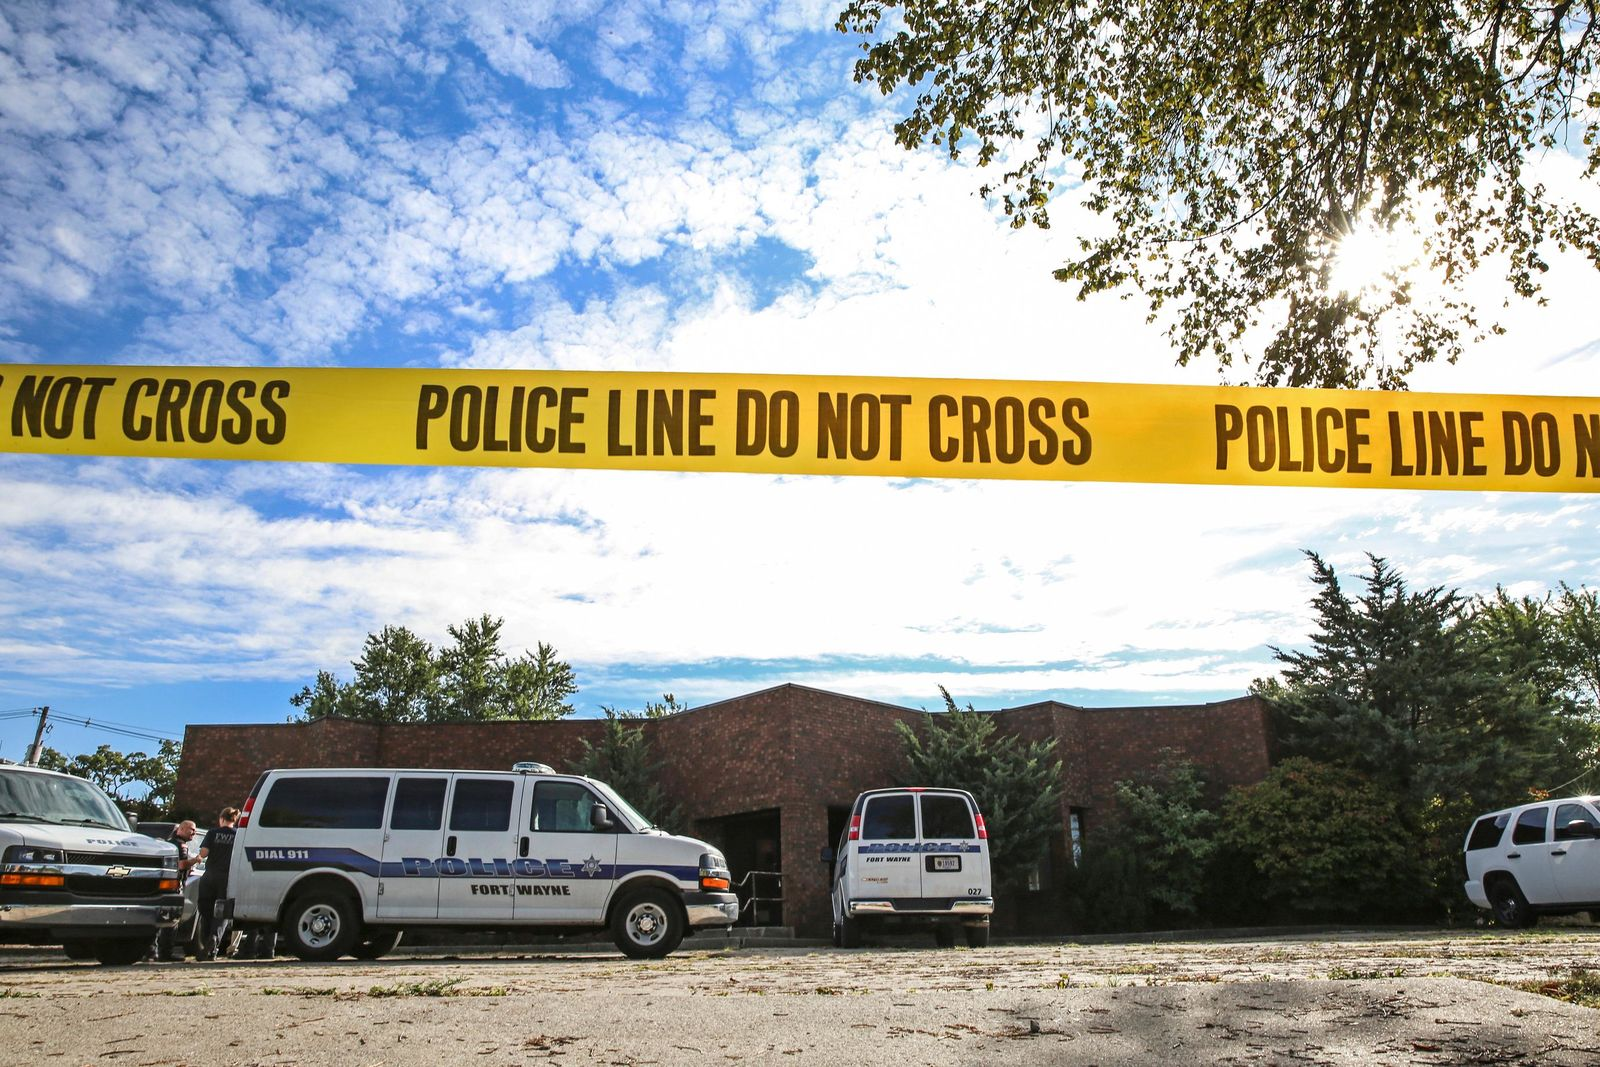 Officers from the Fort Wayne Police Department search the building that once housed an abortion clinic owned by Dr. Ulrich Klopfer on Thursday, Sept. 19, 2019, in Fort Wayne, Ind. After the doctor's death on Sept. 3, more than 2,000 medically preserved fetal remains were found in the garage of his home in rural Crete, Ill. (Eric Ginnard/The Herald-News via AP)